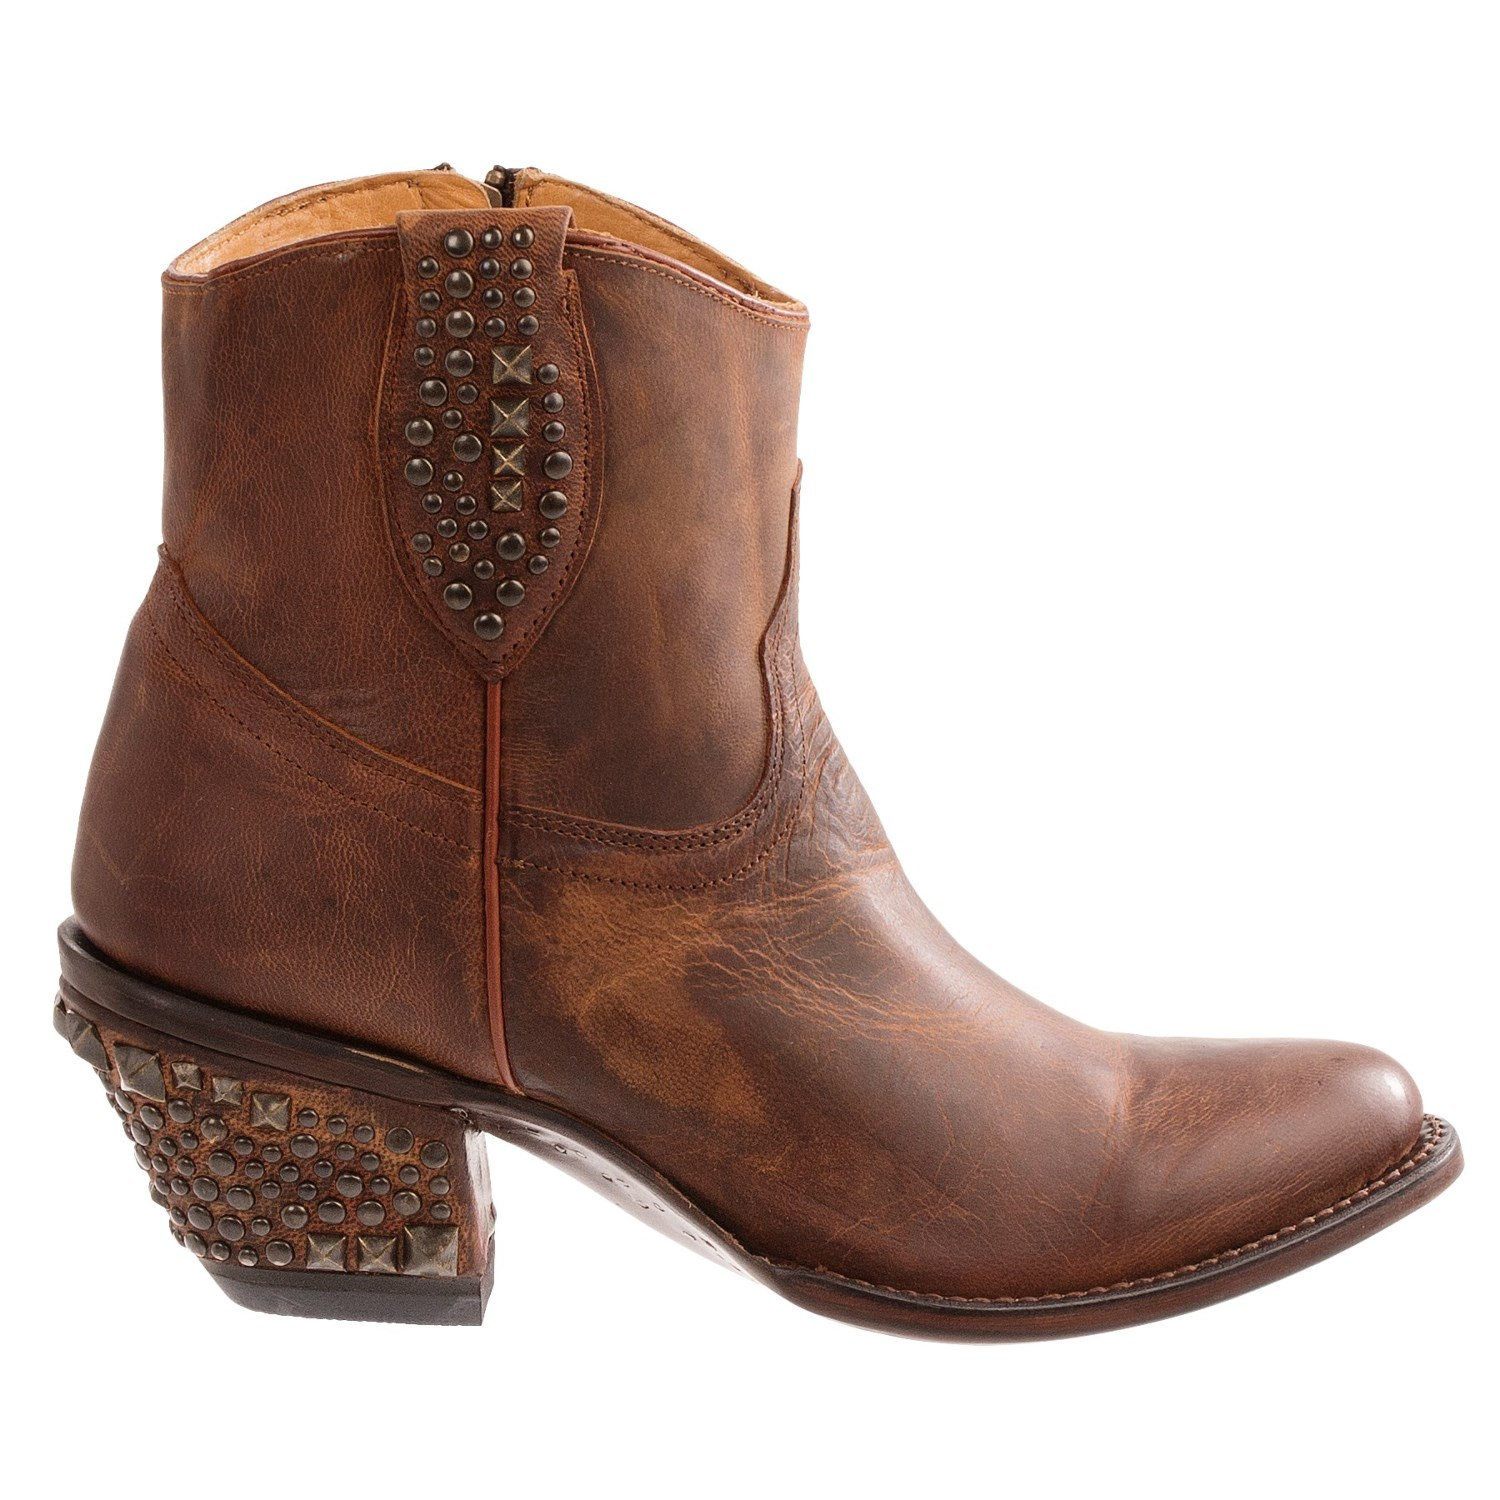 New Once Again, Falls Favorite Shoe Is A Boot A Short Boot An Ankle Boot  Worn With Skirts And Dresses Or Pants And Jeans